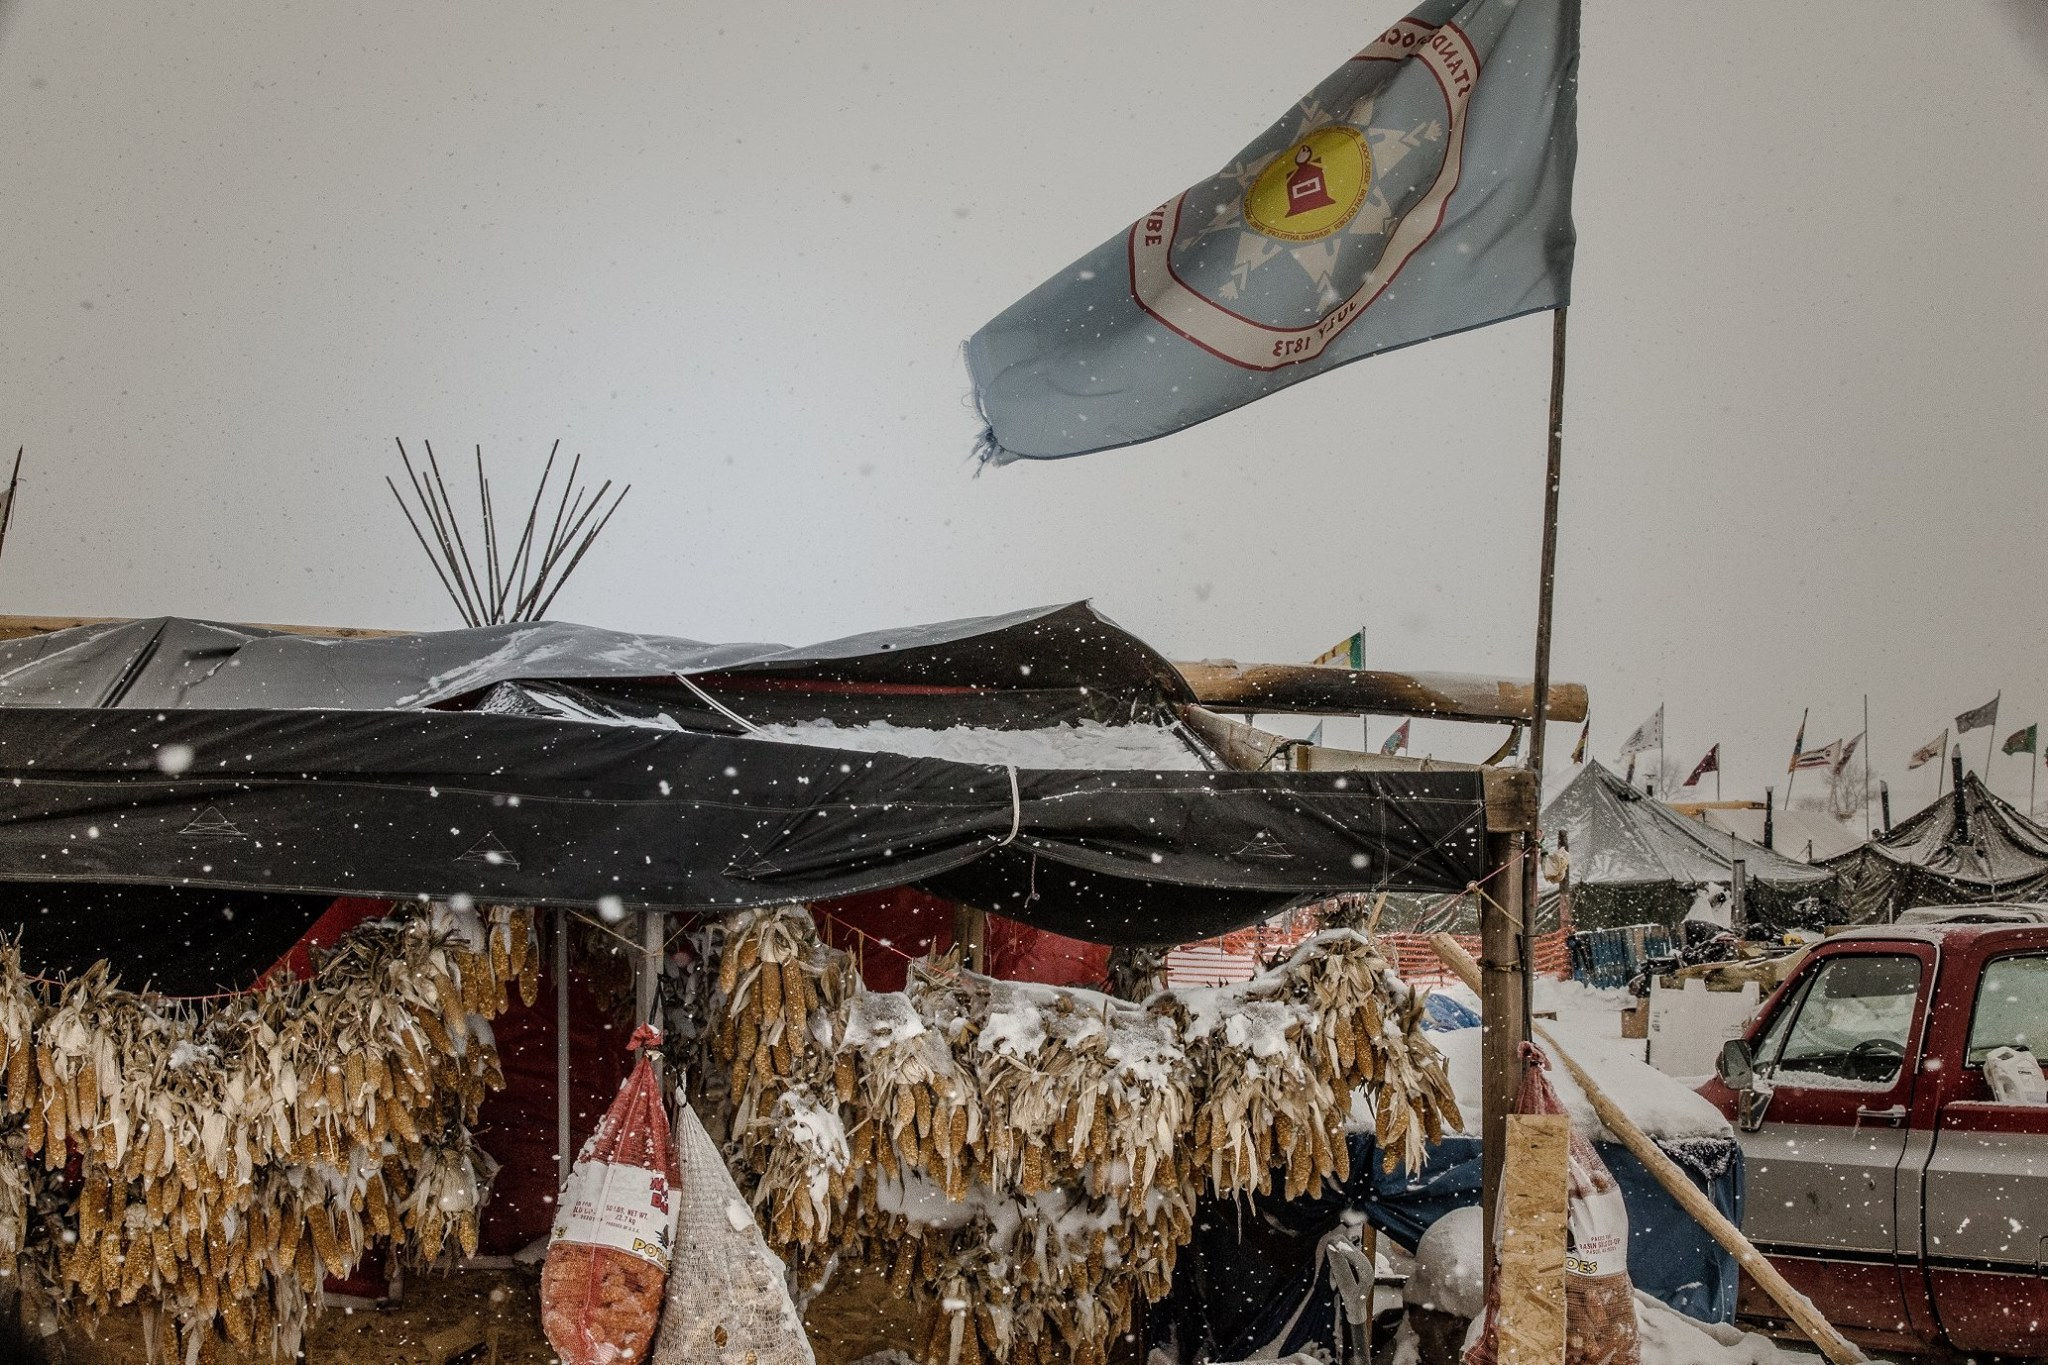 Denver American Horse: Water protectors are always in my prayers